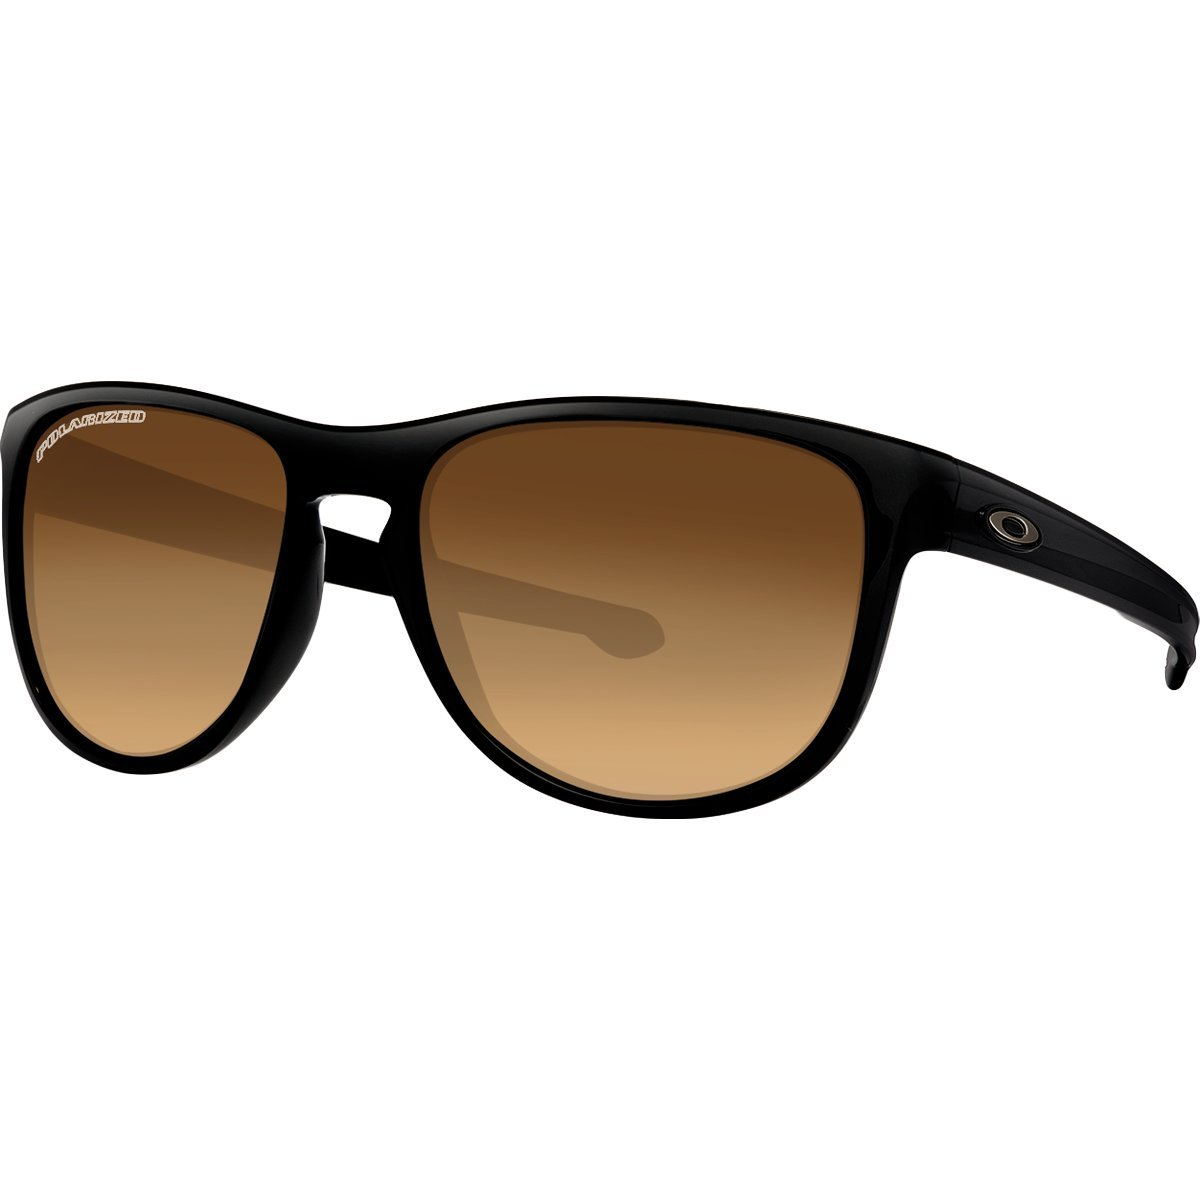 Oakley Men's Sliver R Polarized Rectangular Sunglasses, Matte Black with Brown Gradient, 57 mm